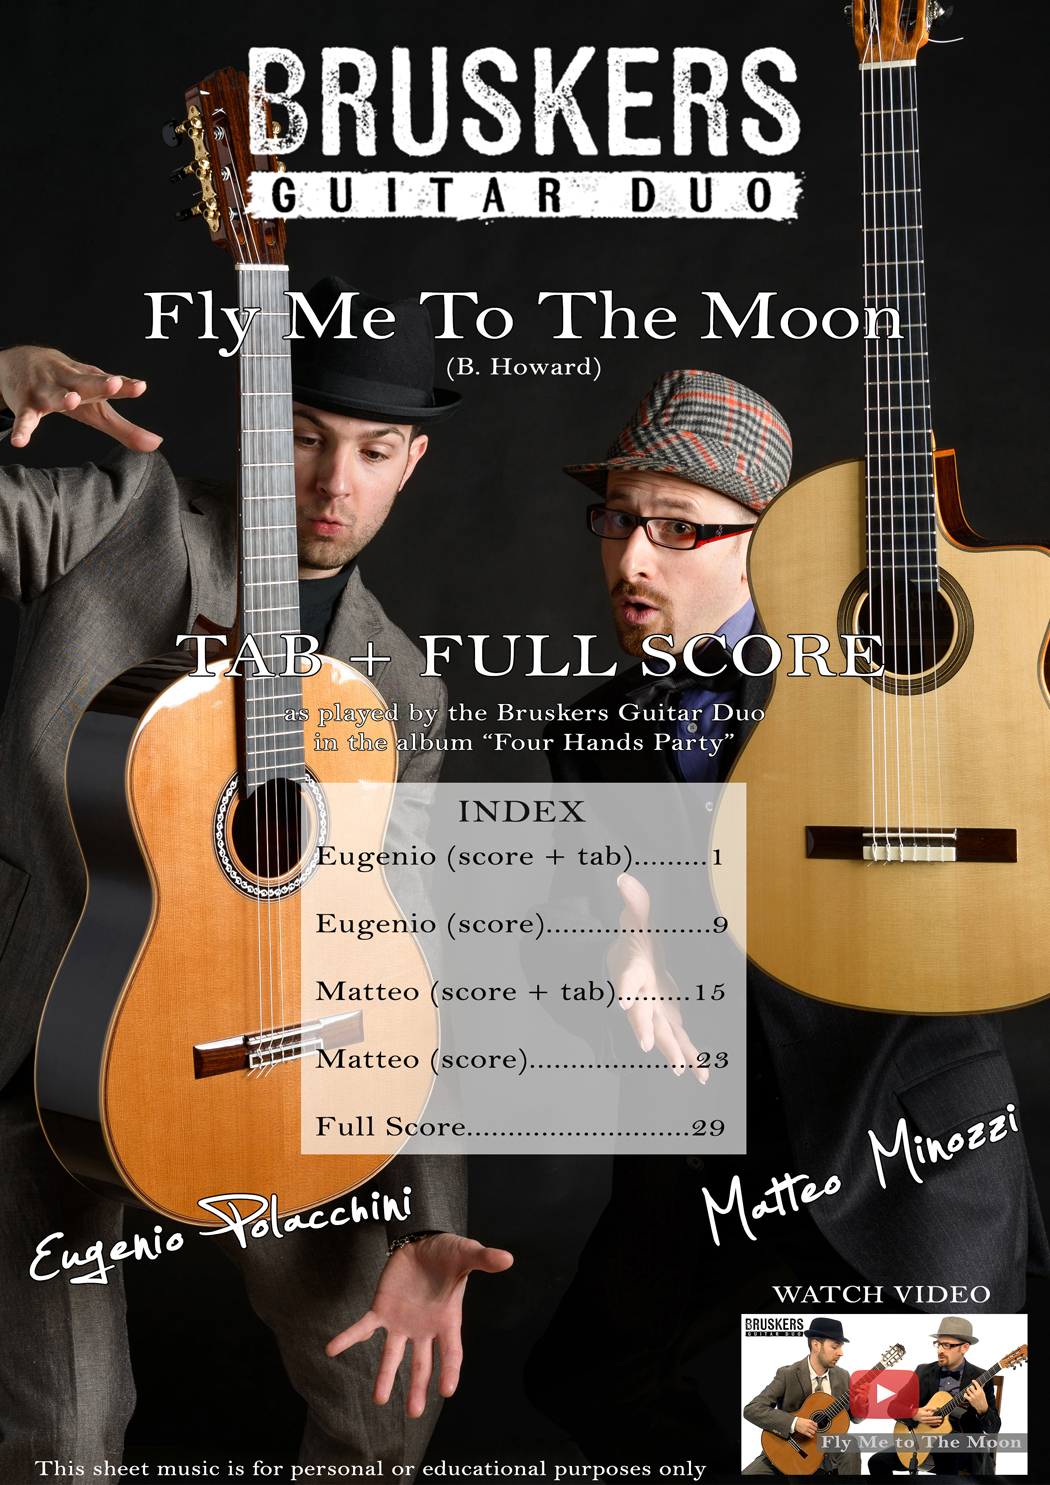 Fly Me To The Moon - Score Cover - Bruskers Guitar Duo